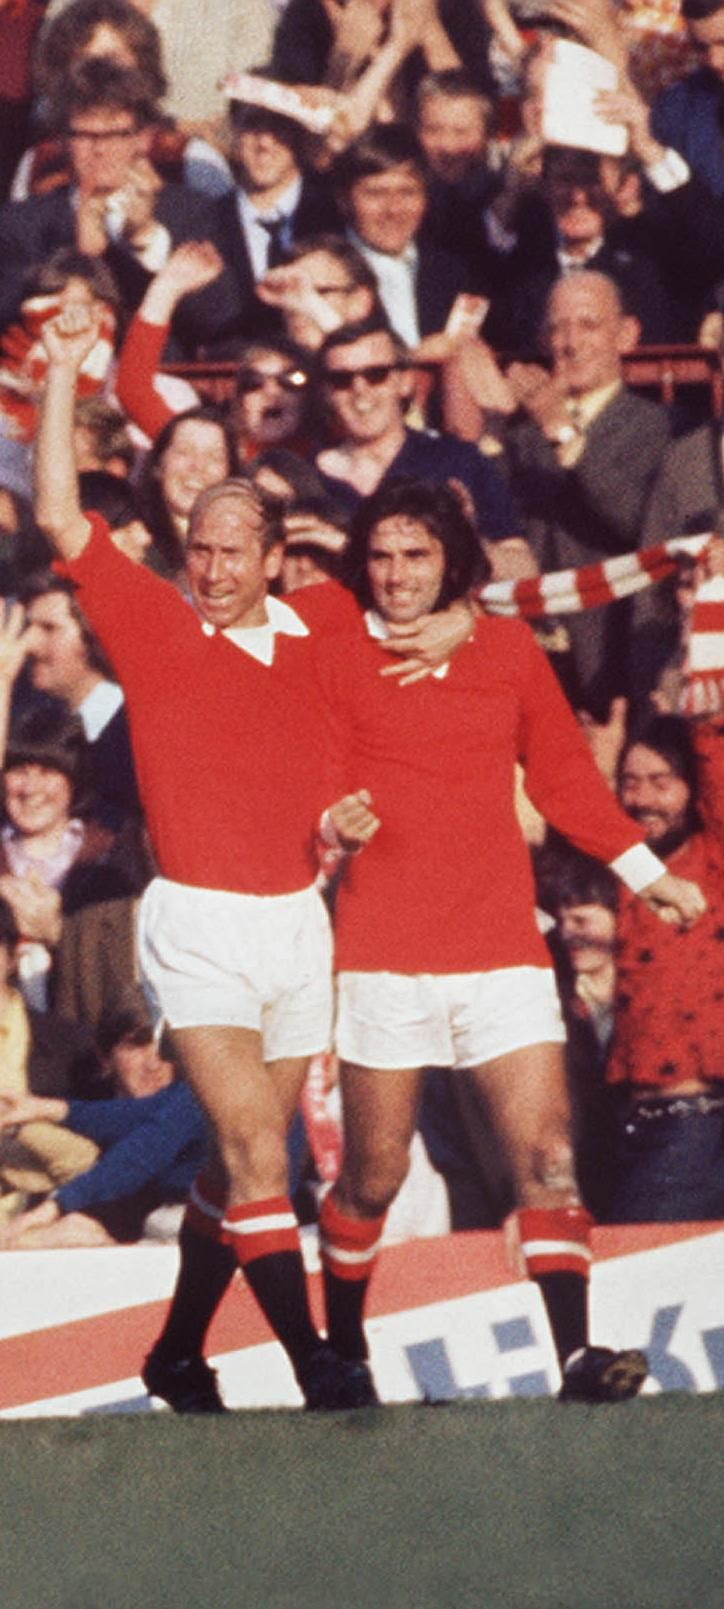 Bobby Charlton Manchester United's all time top goal scorer and George best 5th top goal scorer.